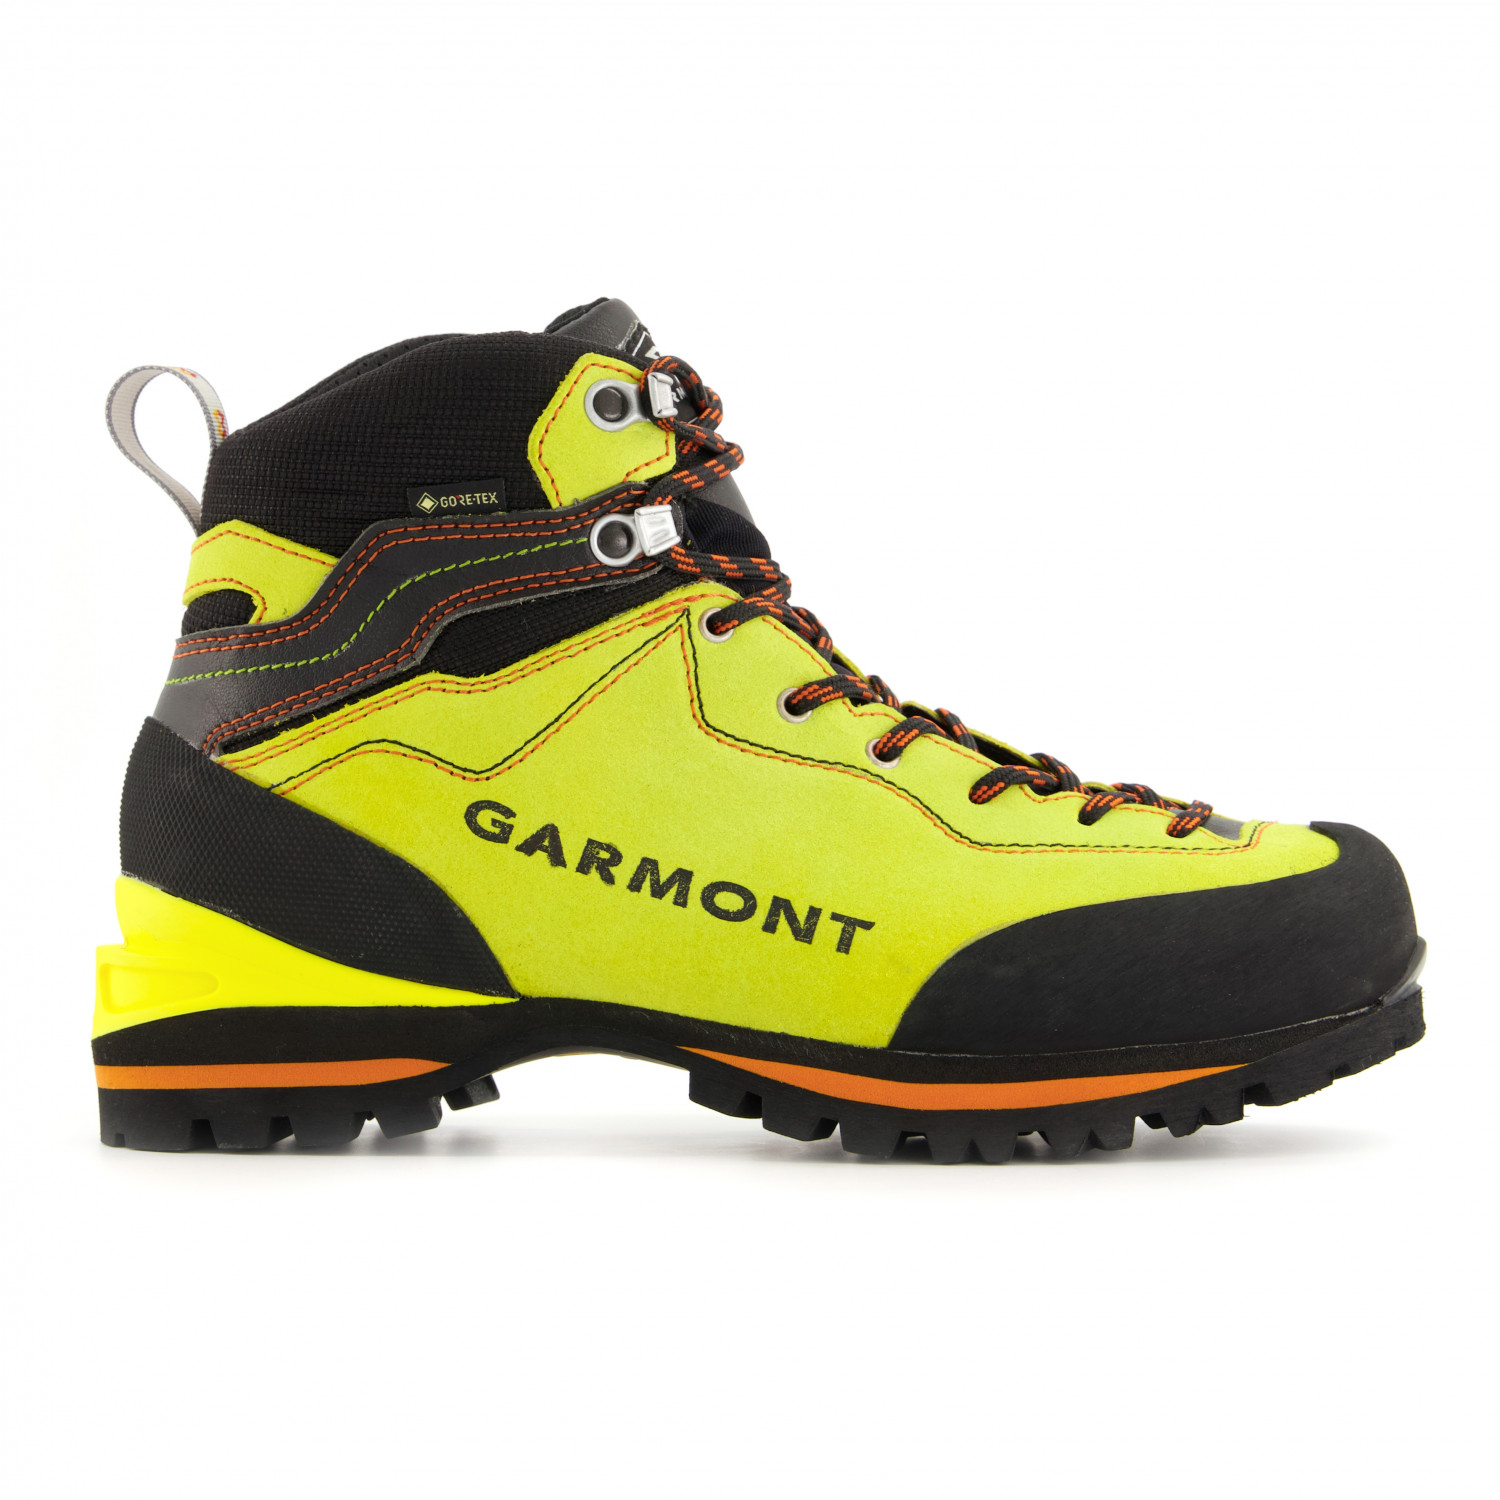 quality design 7e7e8 cf9e9 Garmont - Ascent GTX - Scarponi da montagna - Yellow / Orange | 7 (UK)